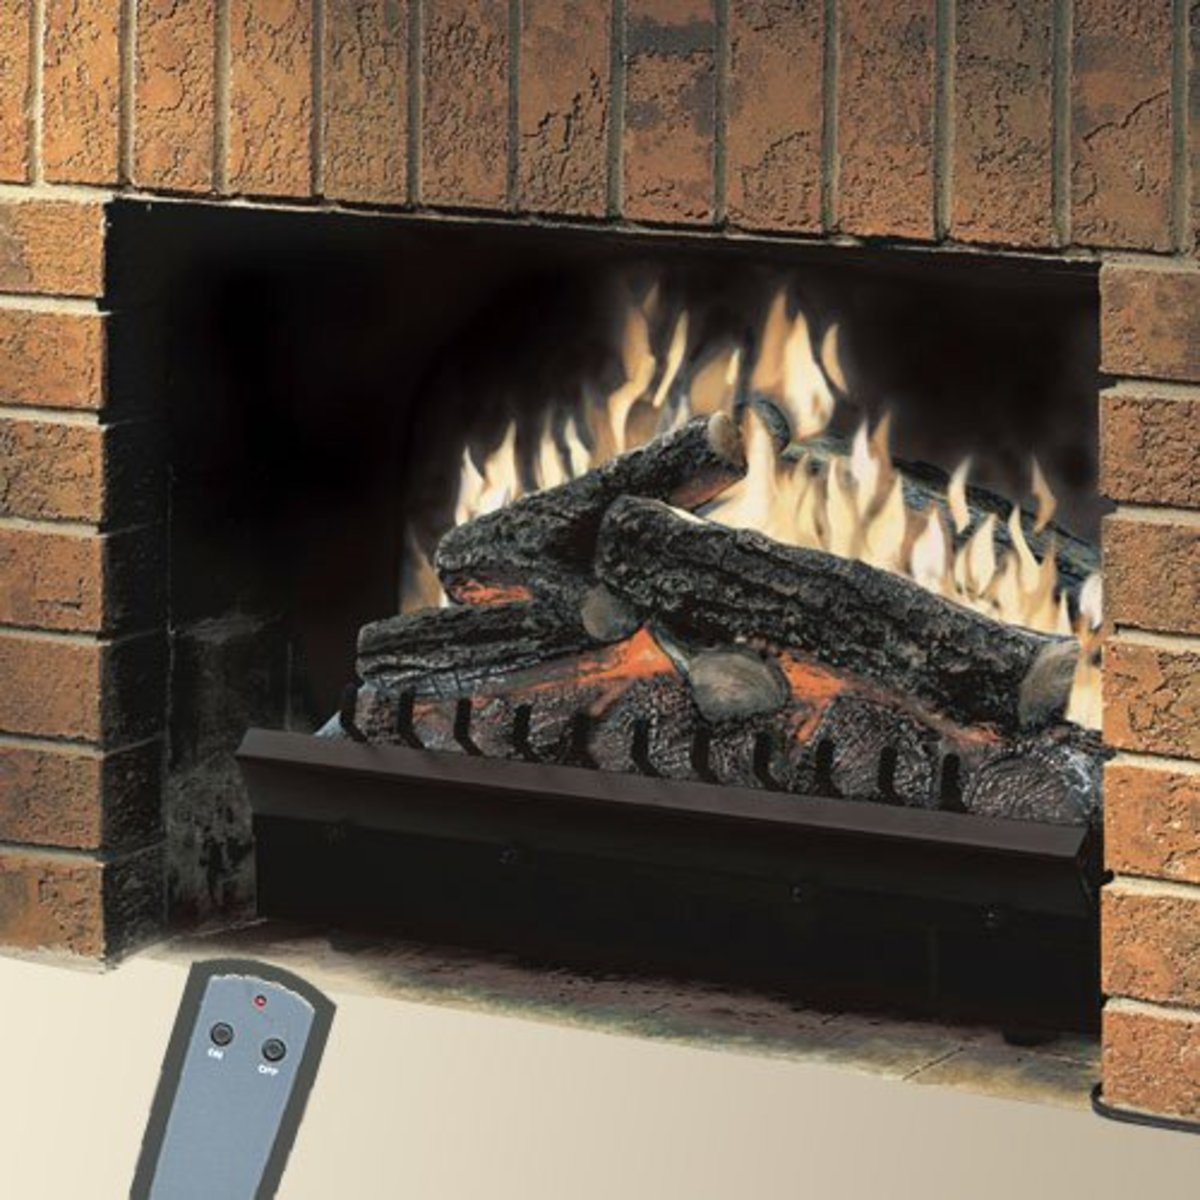 Electric Fireplace Inserts: How They Work And How They Differ From Vent Free Gas Fireplaces